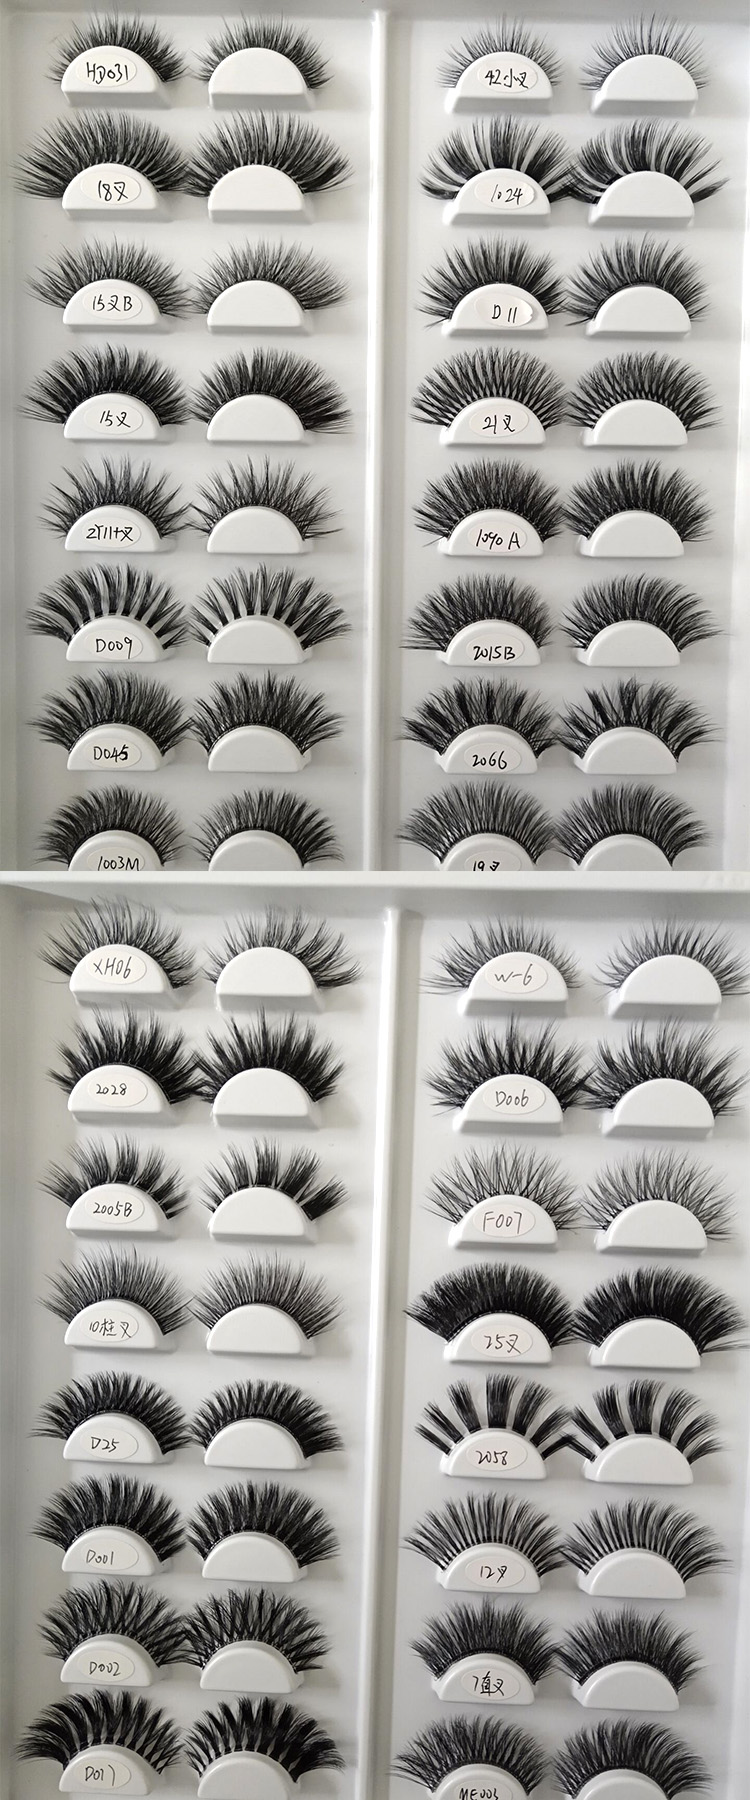 wholesale hundreds styles of 3d faux mink lashes China.jpg